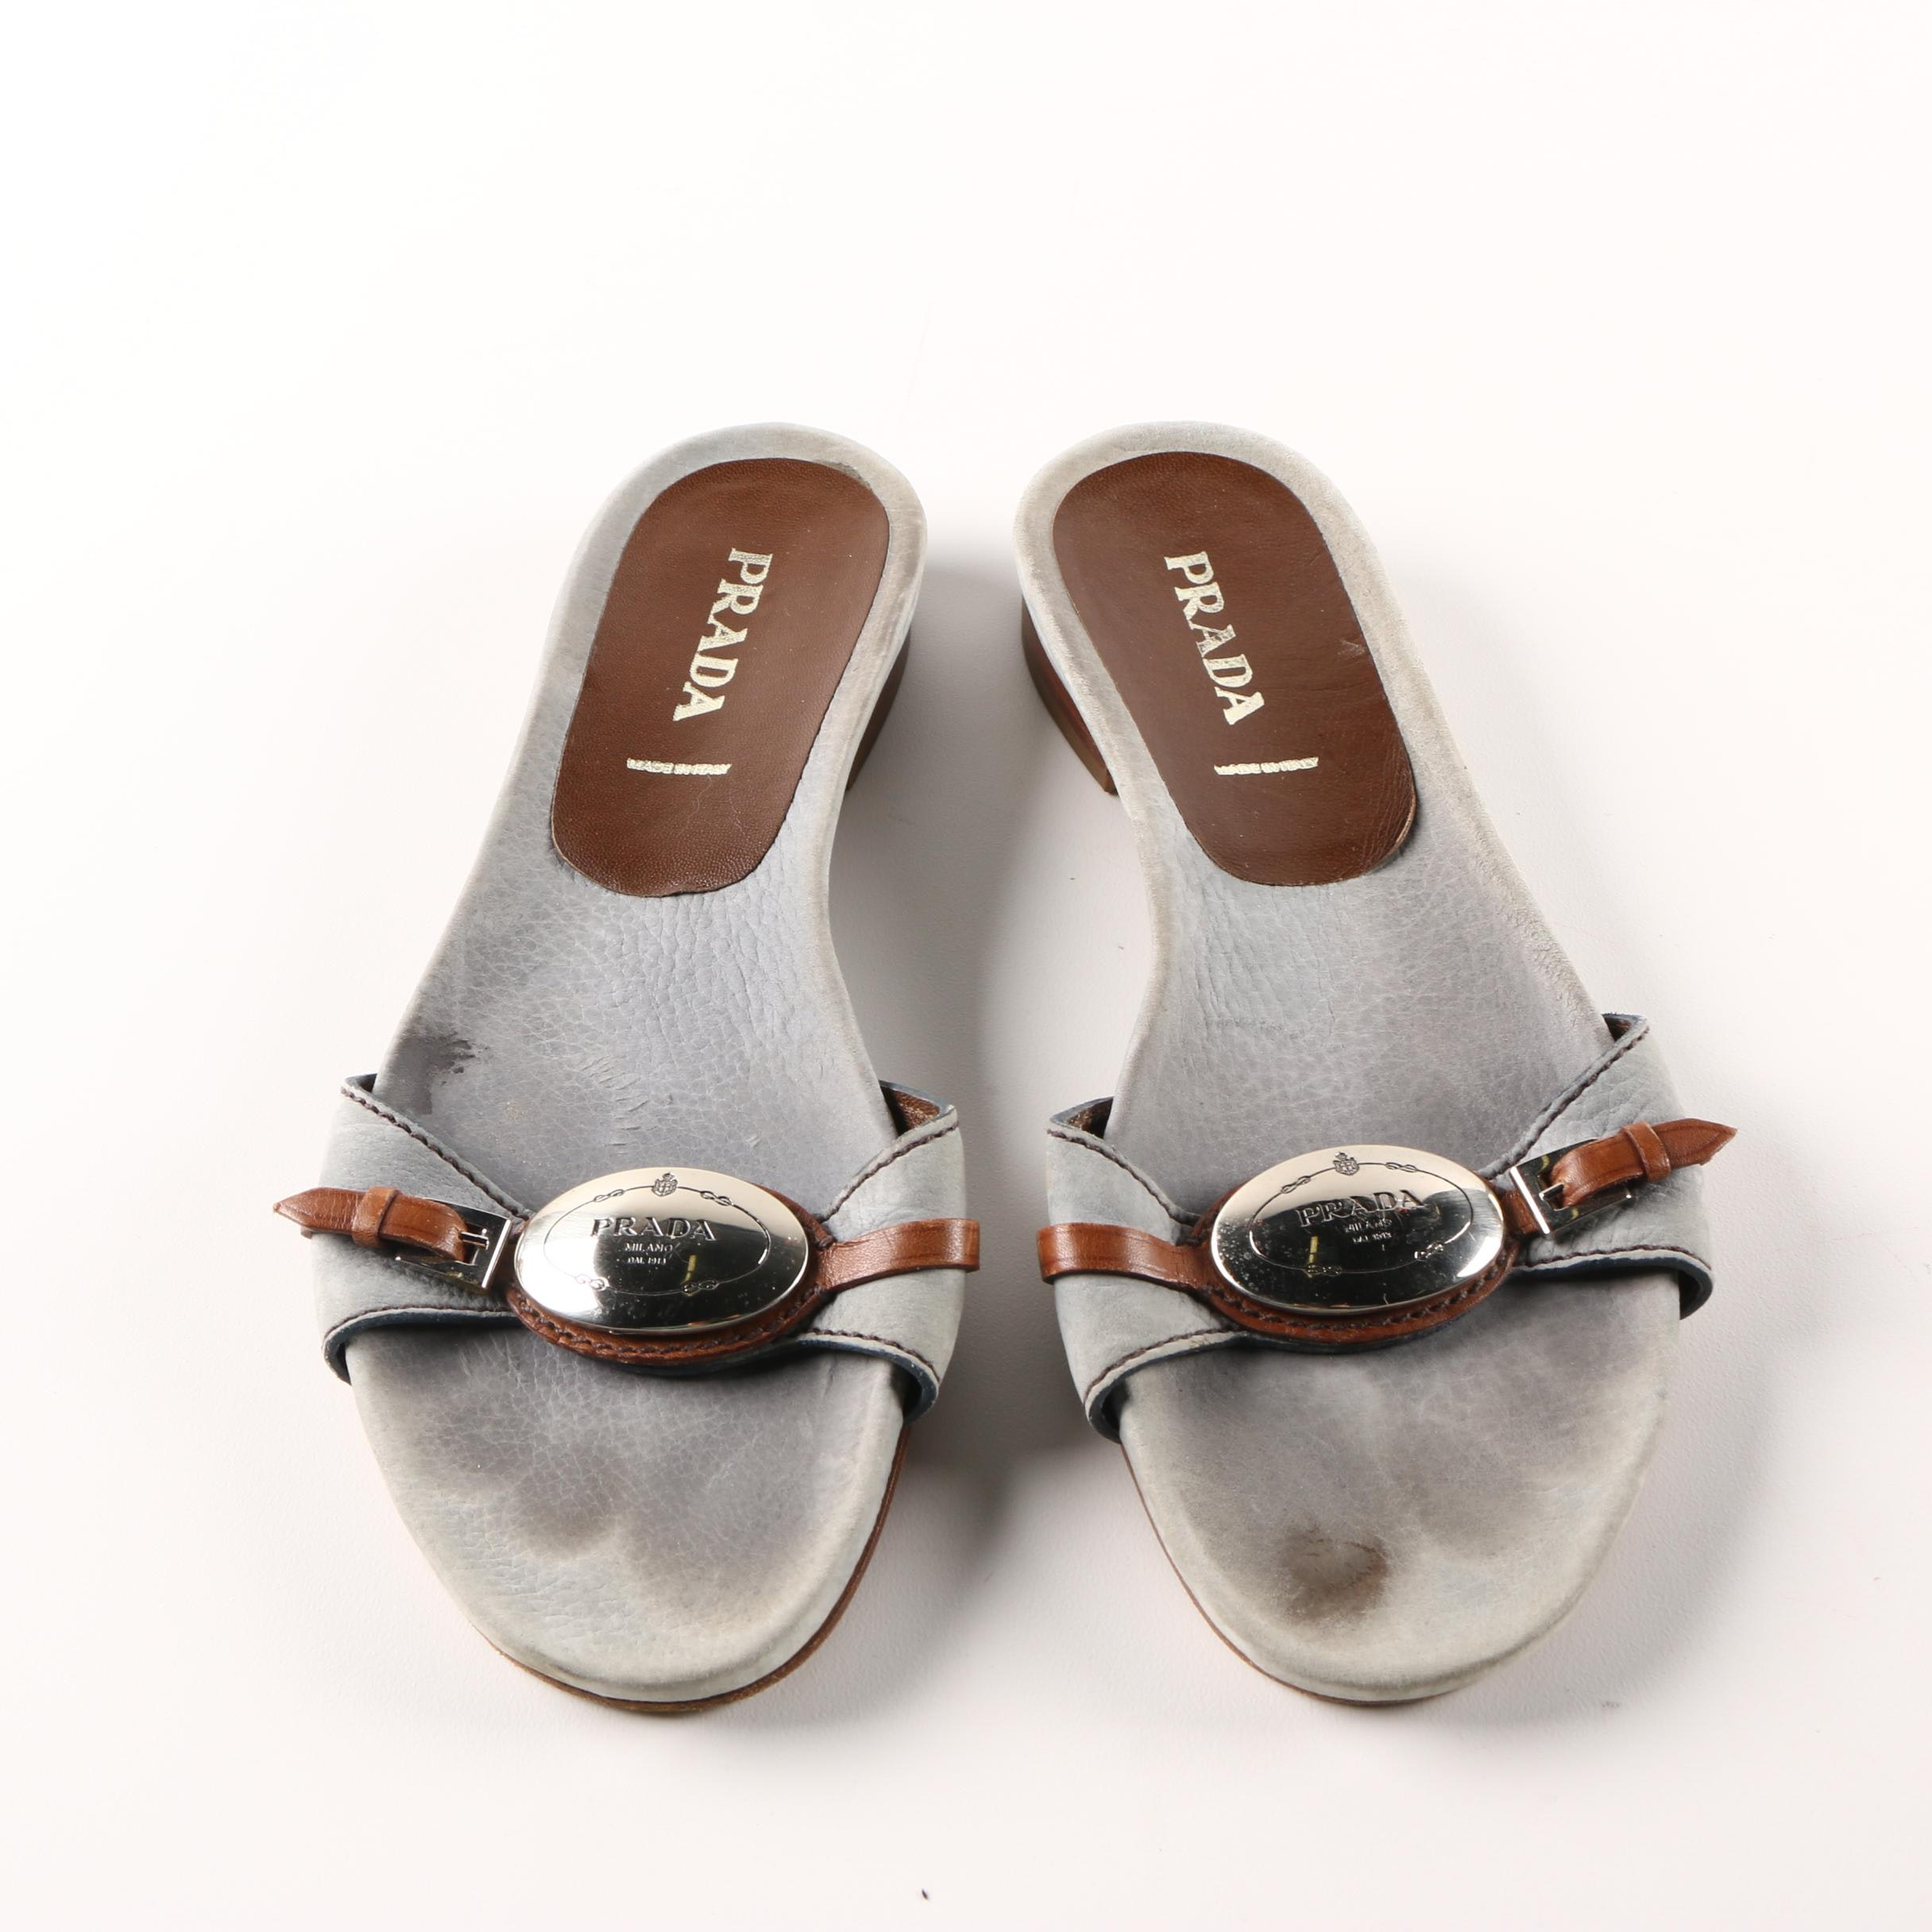 Women's Prada Leather Slide Sandals in Gray and Brwon